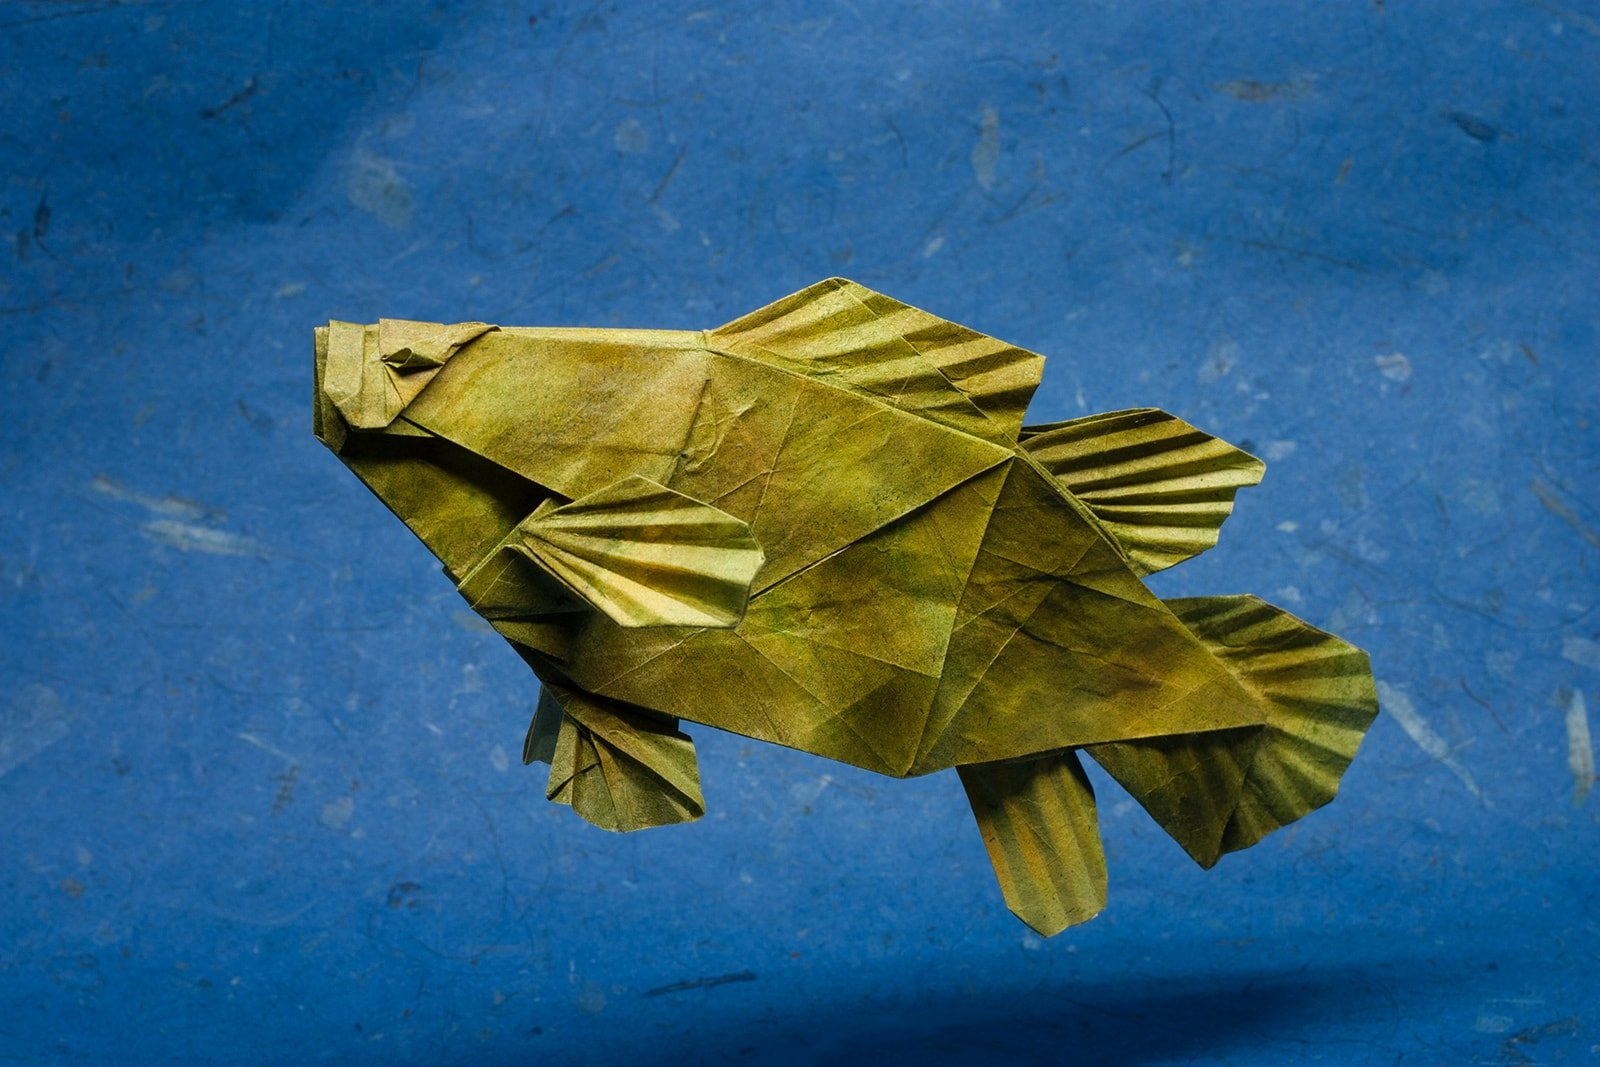 25 Excellent Origami Fish Just for the Halibut - photo#8